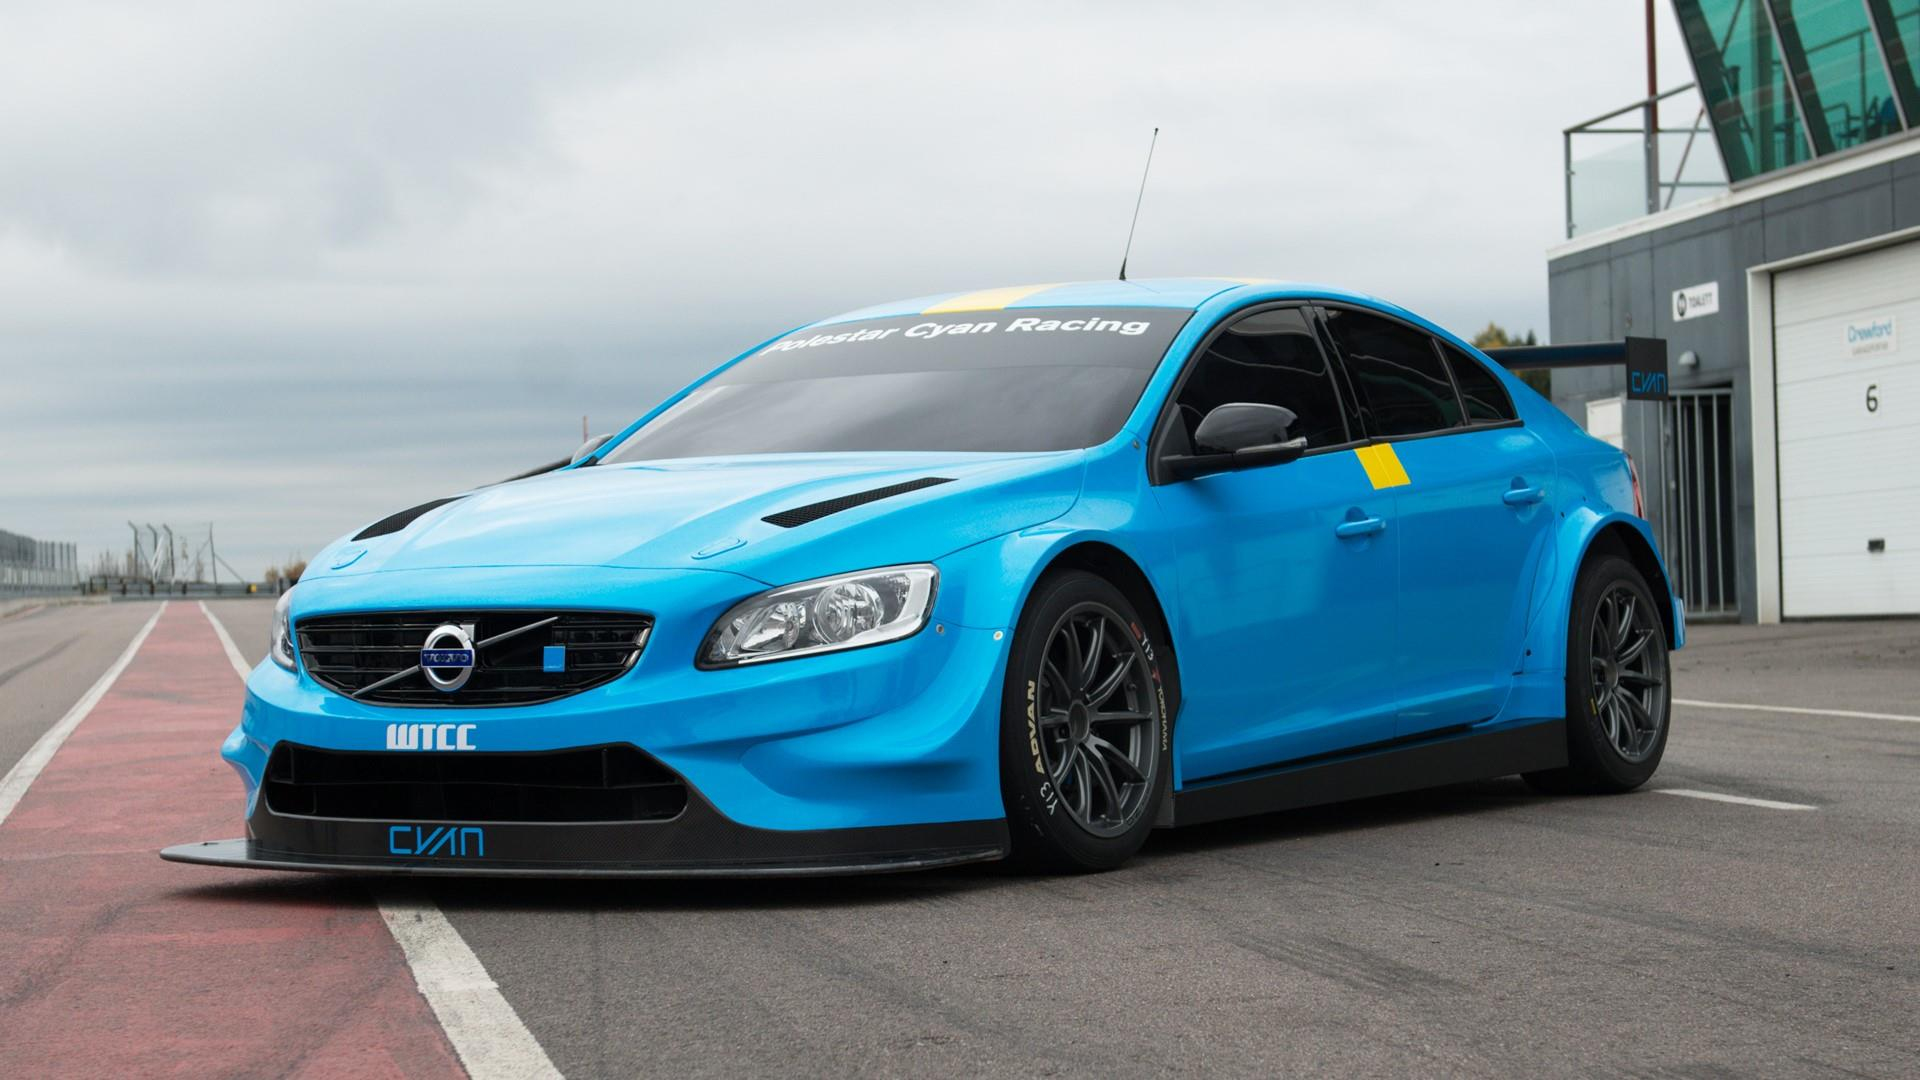 2016 Volvo S60 Polestar Tc1 News And Information Research And History Conceptcarz Com